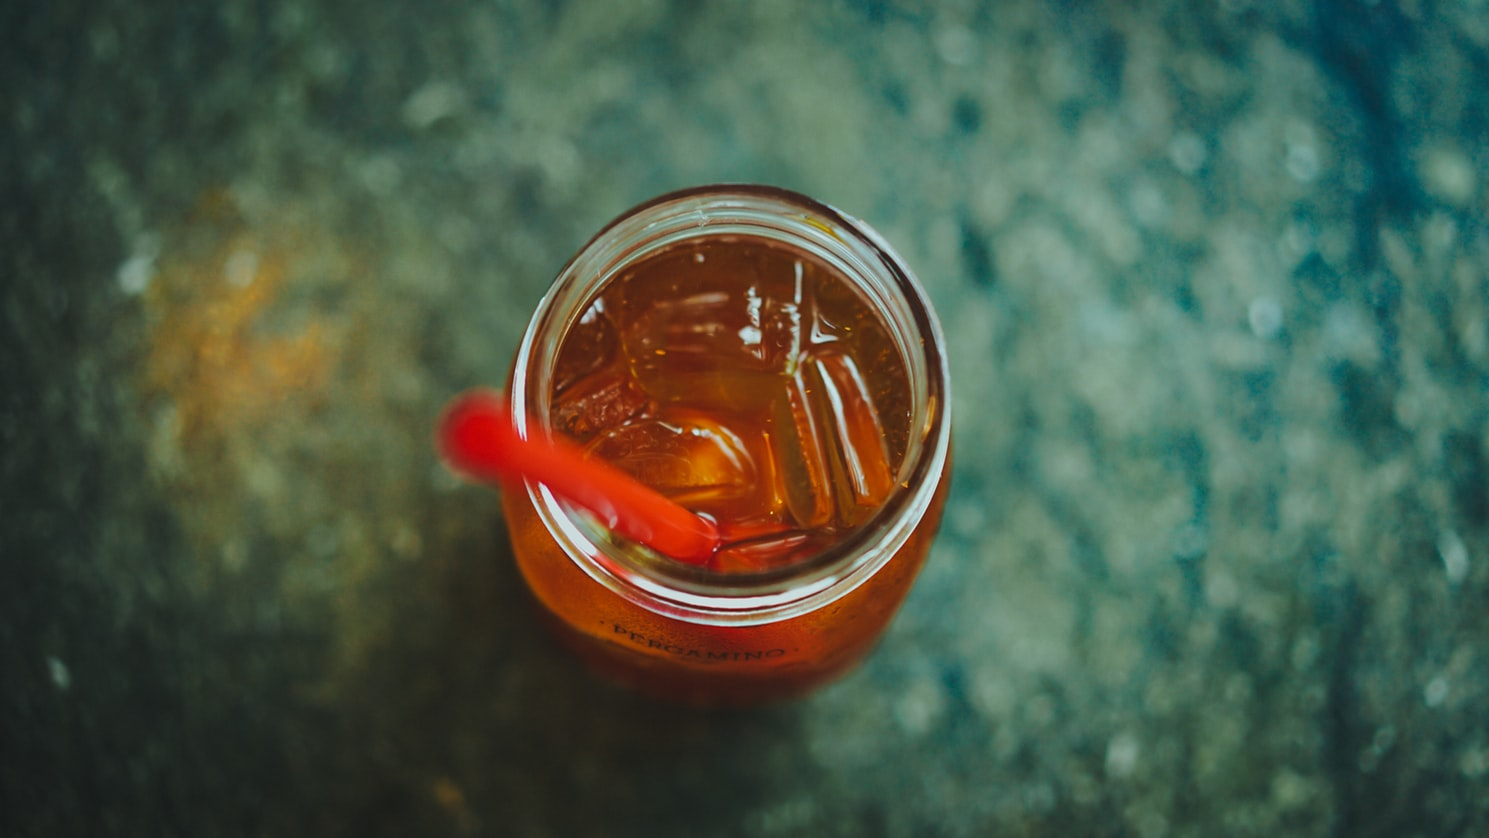 A glass of alcohol with a red straw in it. Alcohol use is on the rise in seniors.